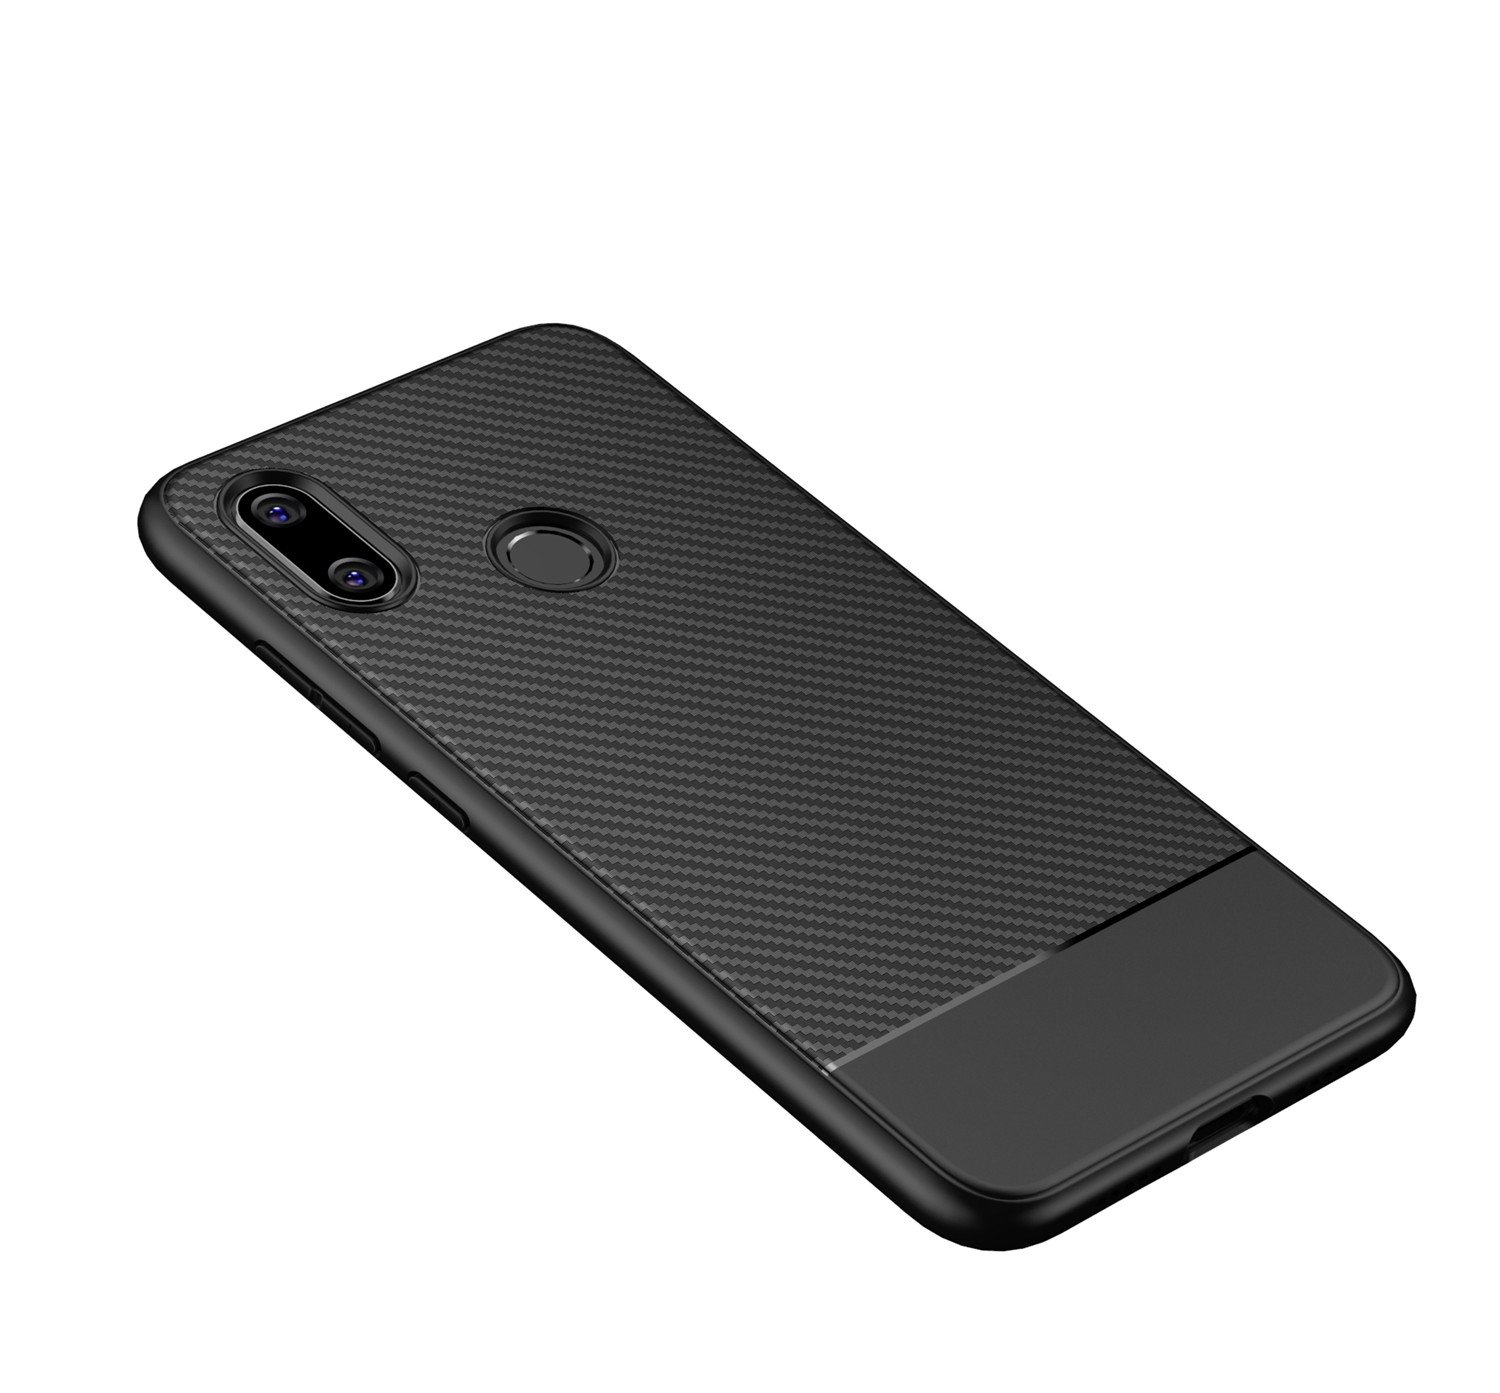 LANDEE Xiaomi mi8 Case, Ultra Slim with Carbon Fiber Design Phone Case Cover for Xiaomi Mi 8 - Black